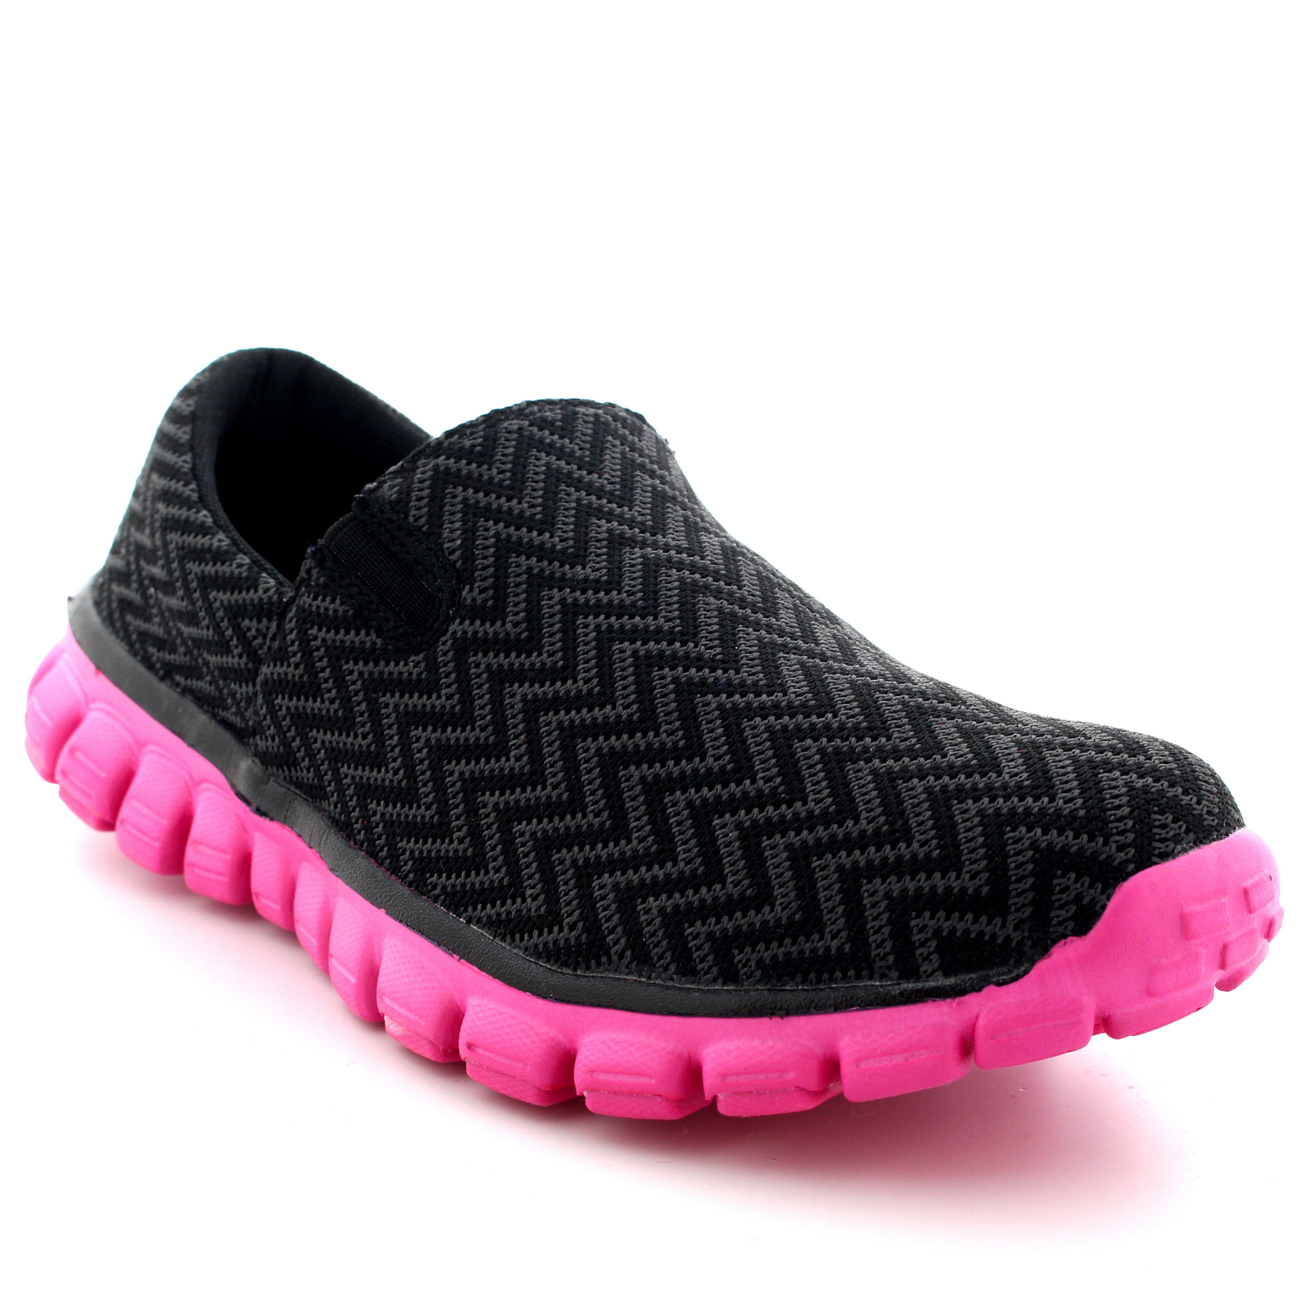 Buy Womens Jogging Walking Gym Shoes Sports Work Running Slip on ... c6977af41